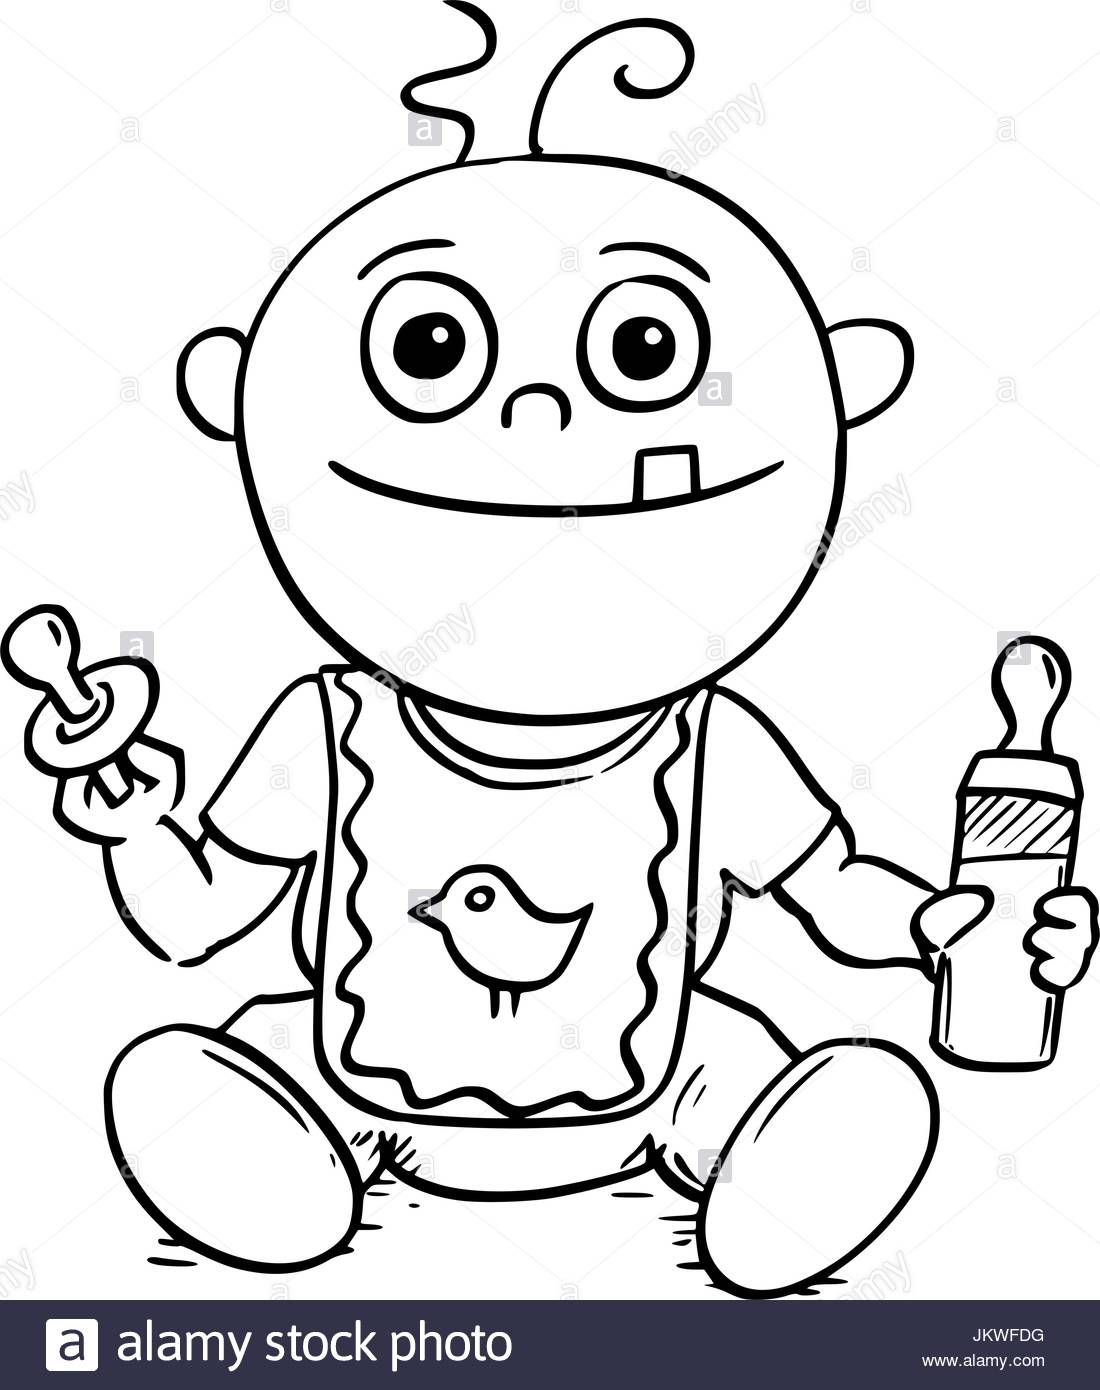 1100x1390 Hand Drawing Cartoon Vector Illustration Of Happy Smiling Baby